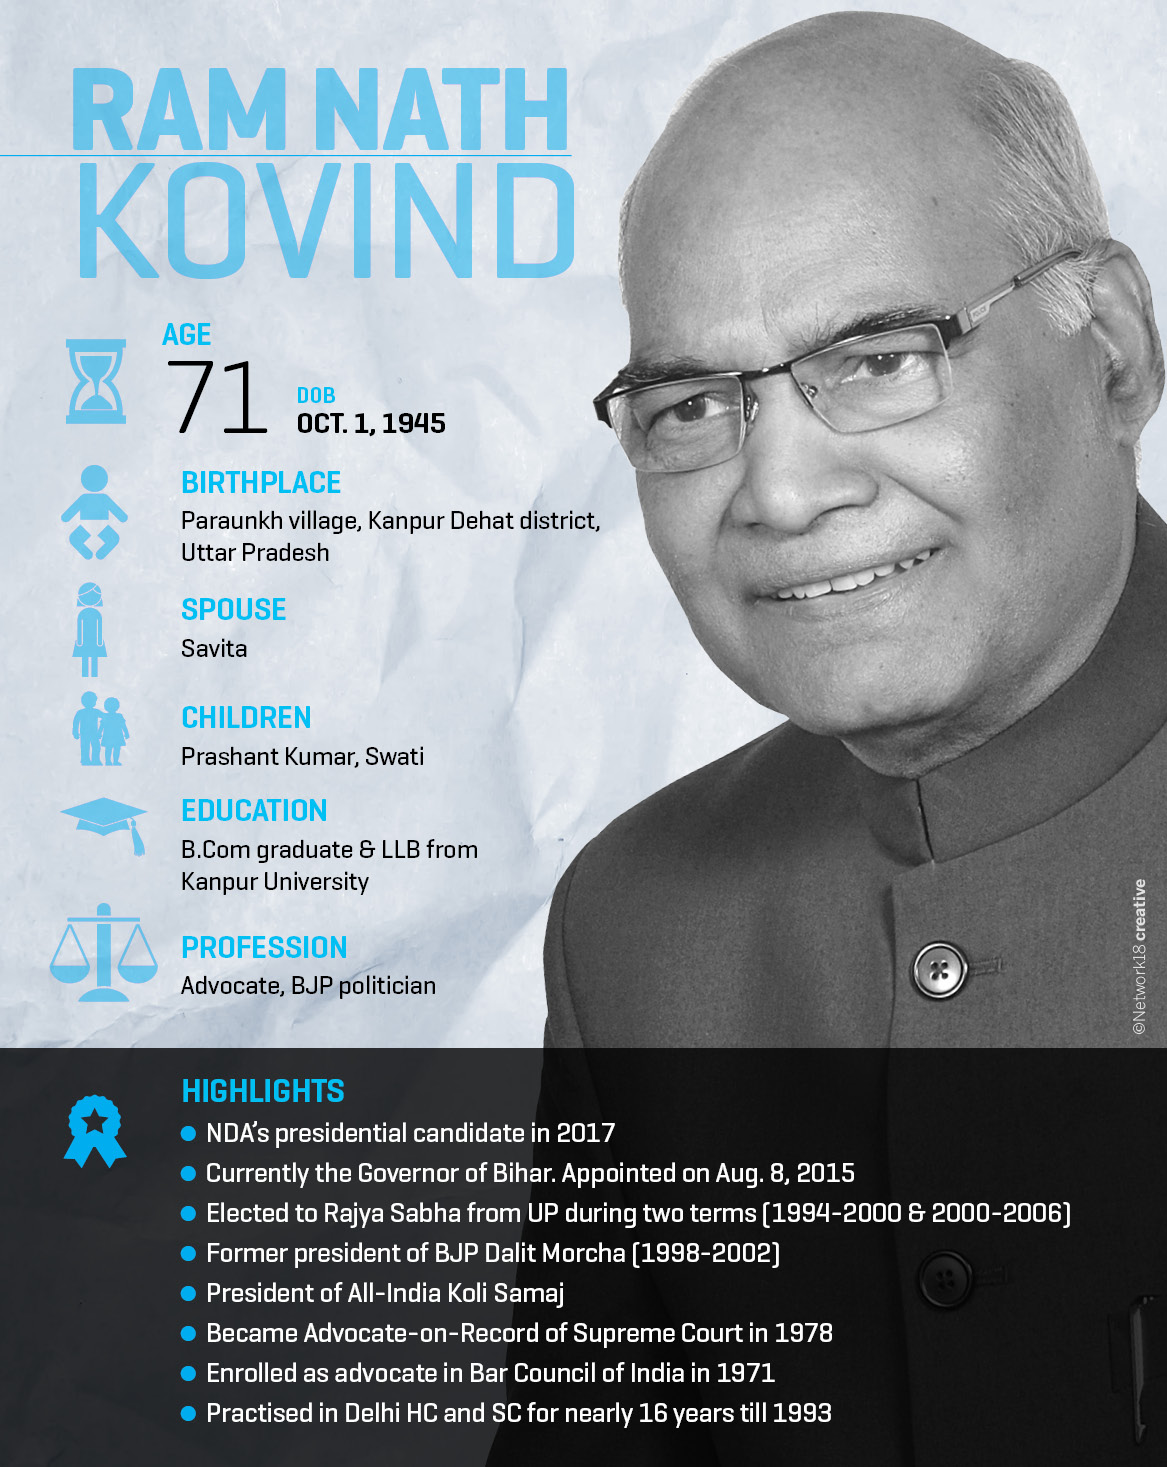 Ram Nath Kovind who is